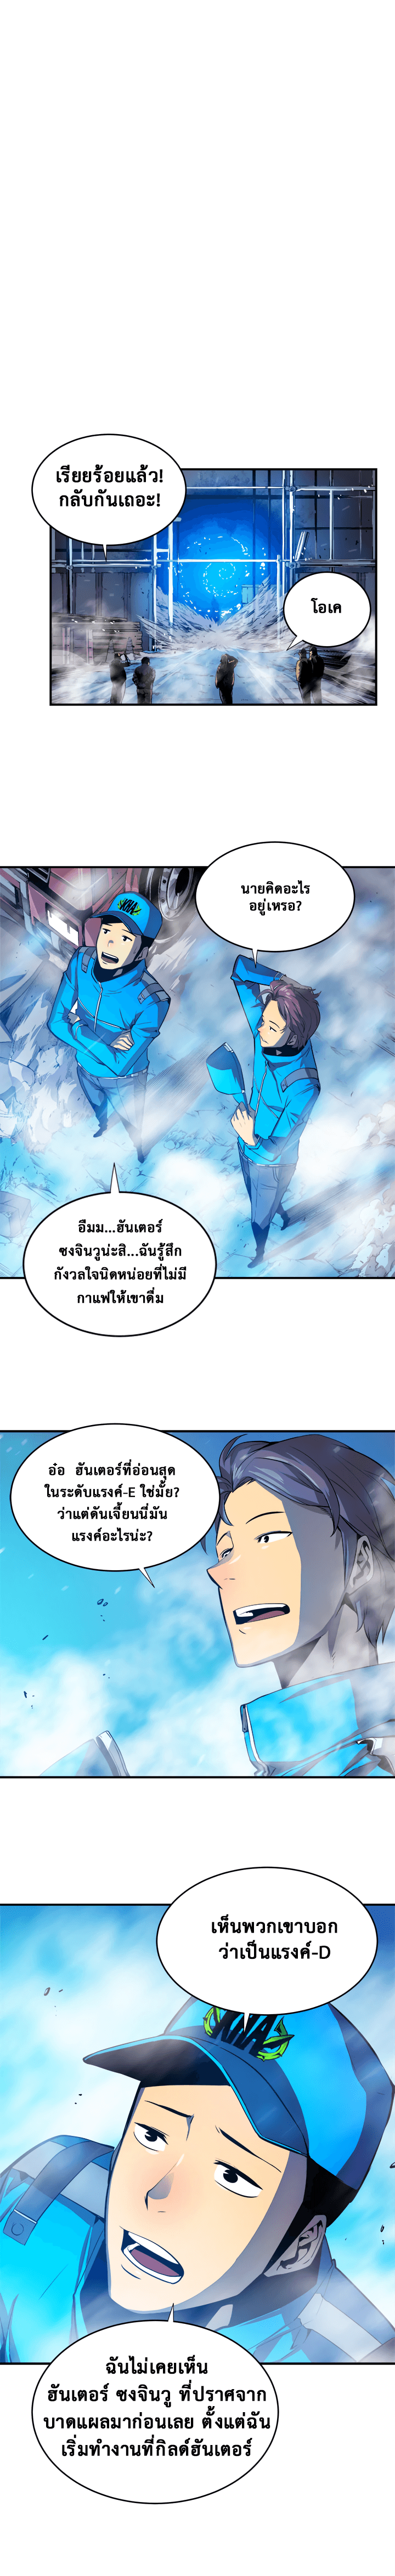 Solo Leveling - ตอนที่ 2